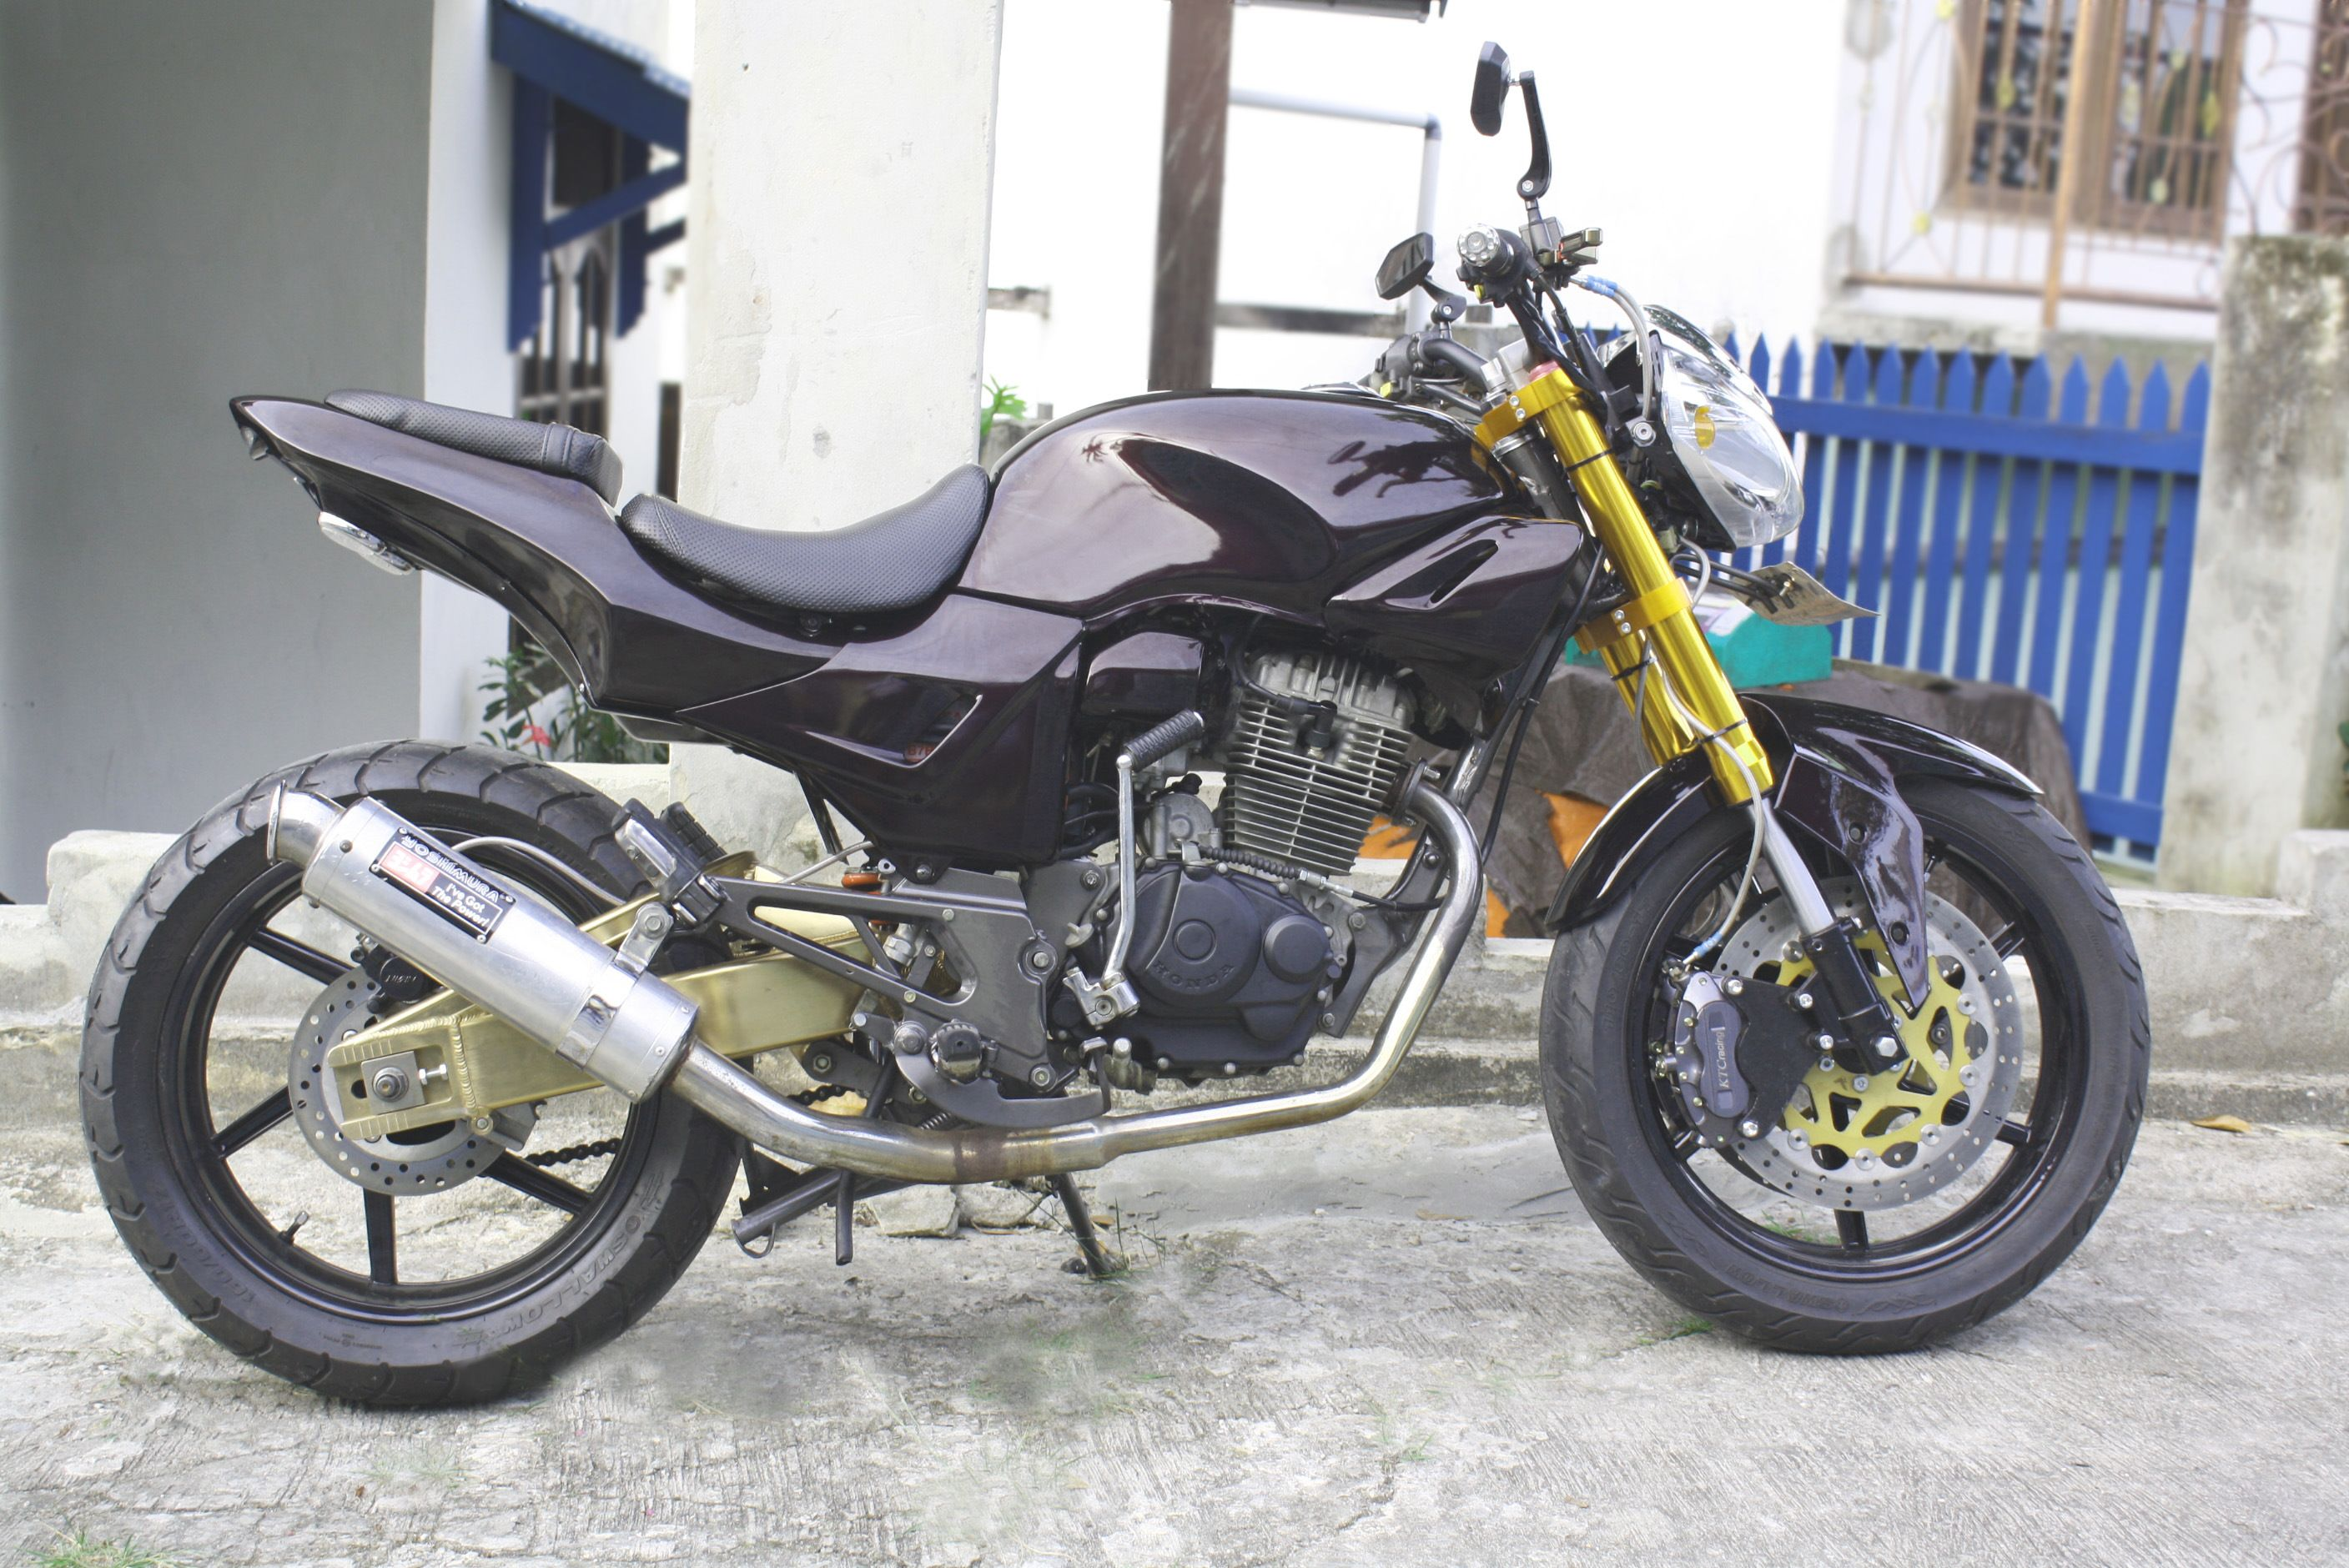 Koleksi Modifikasi Honda Tiger Jadi Street Fighter Terlengkap